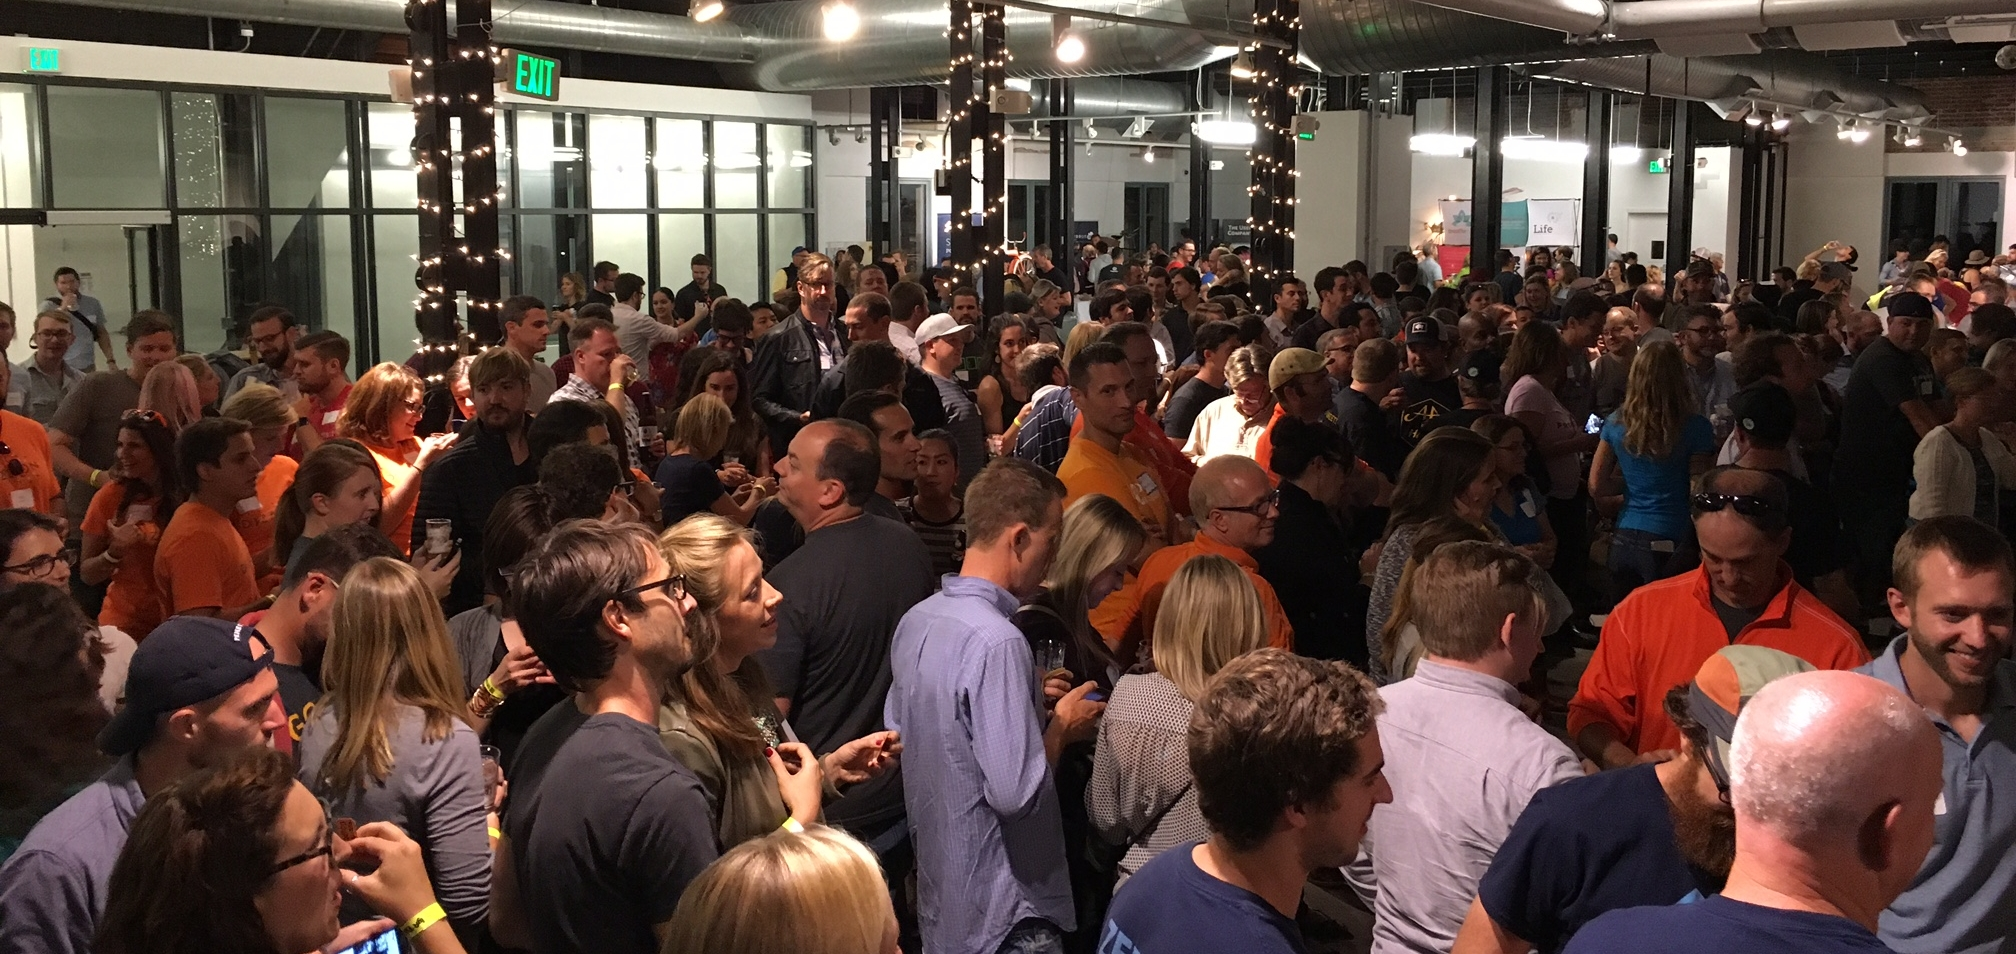 It was a big fun crowd at the Colorado Startup Brews event this year!